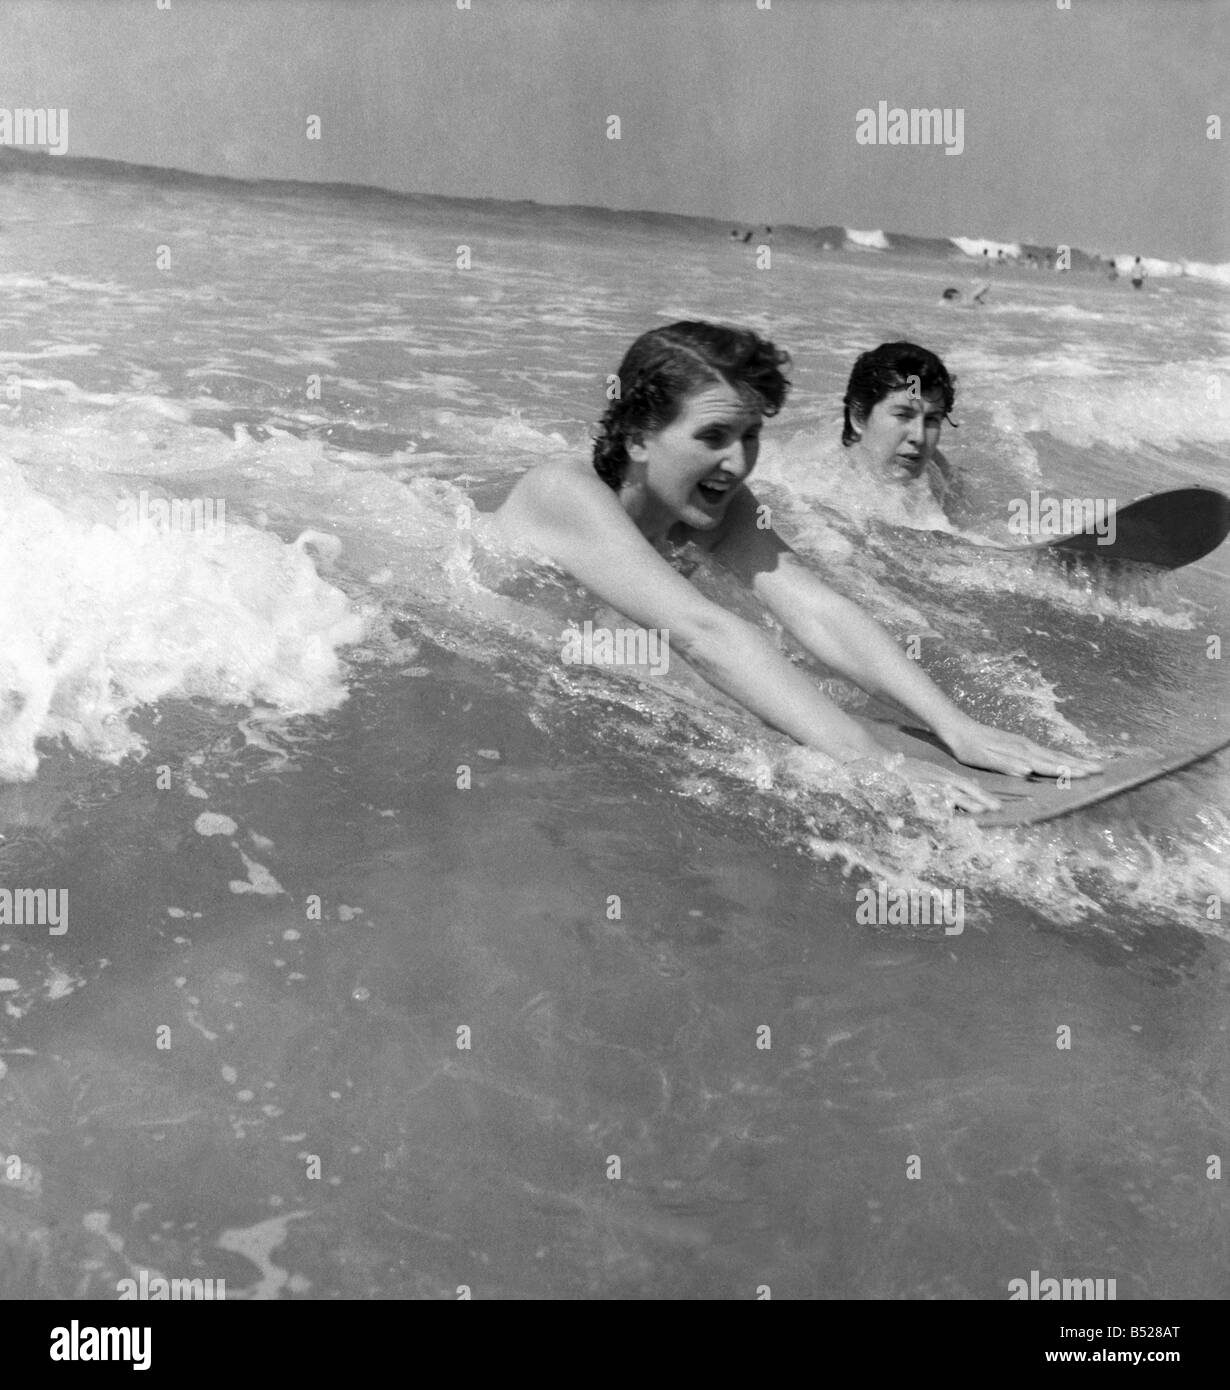 Holidays. Two shop assistants surfing at newquay, Cornwall. May 1953 D2386 Stock Photo